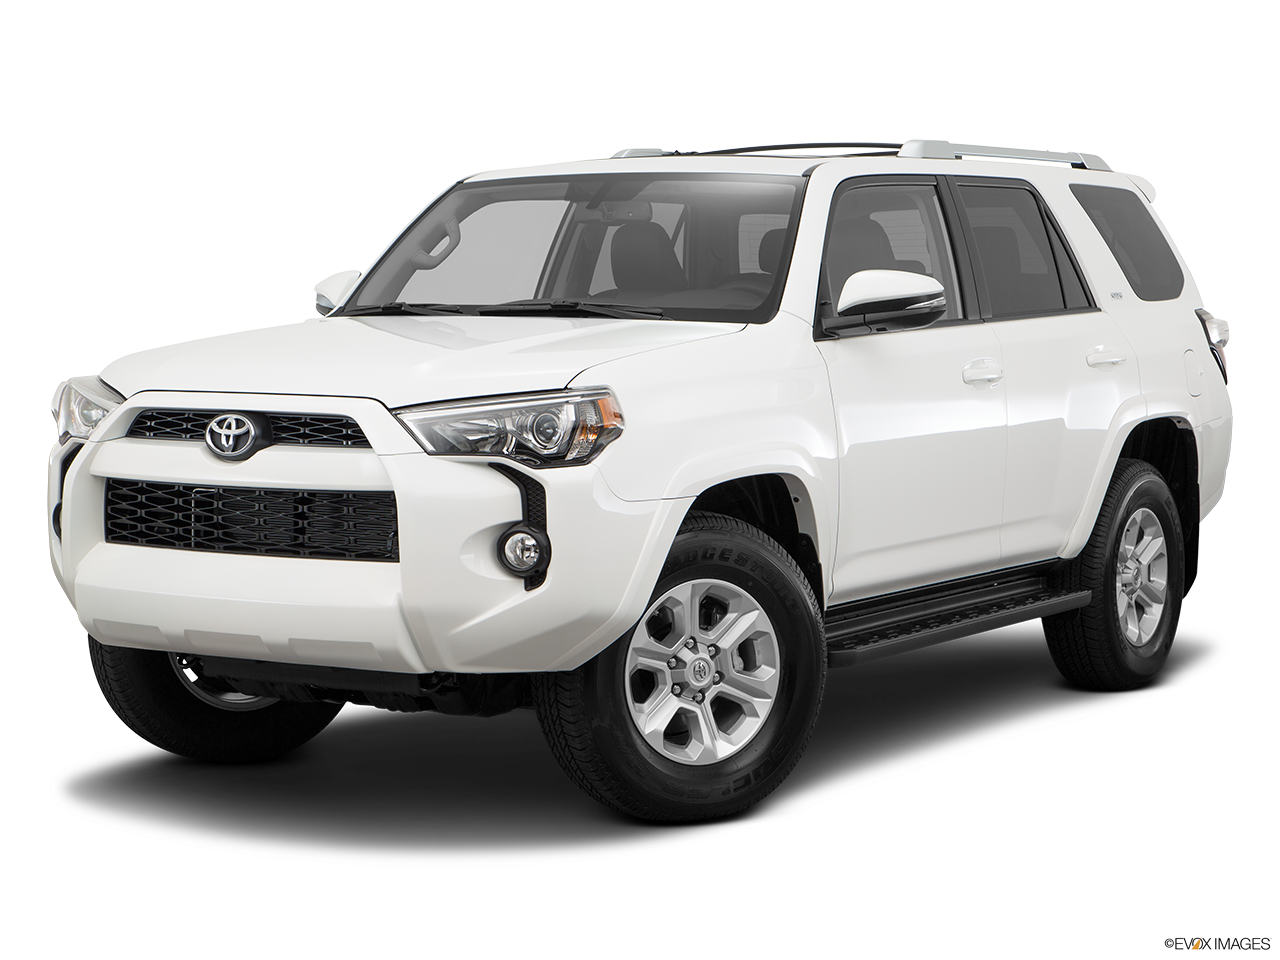 Test Drive A 2016 Toyota 4Runner at Toyota of Glendale in Los Angeles